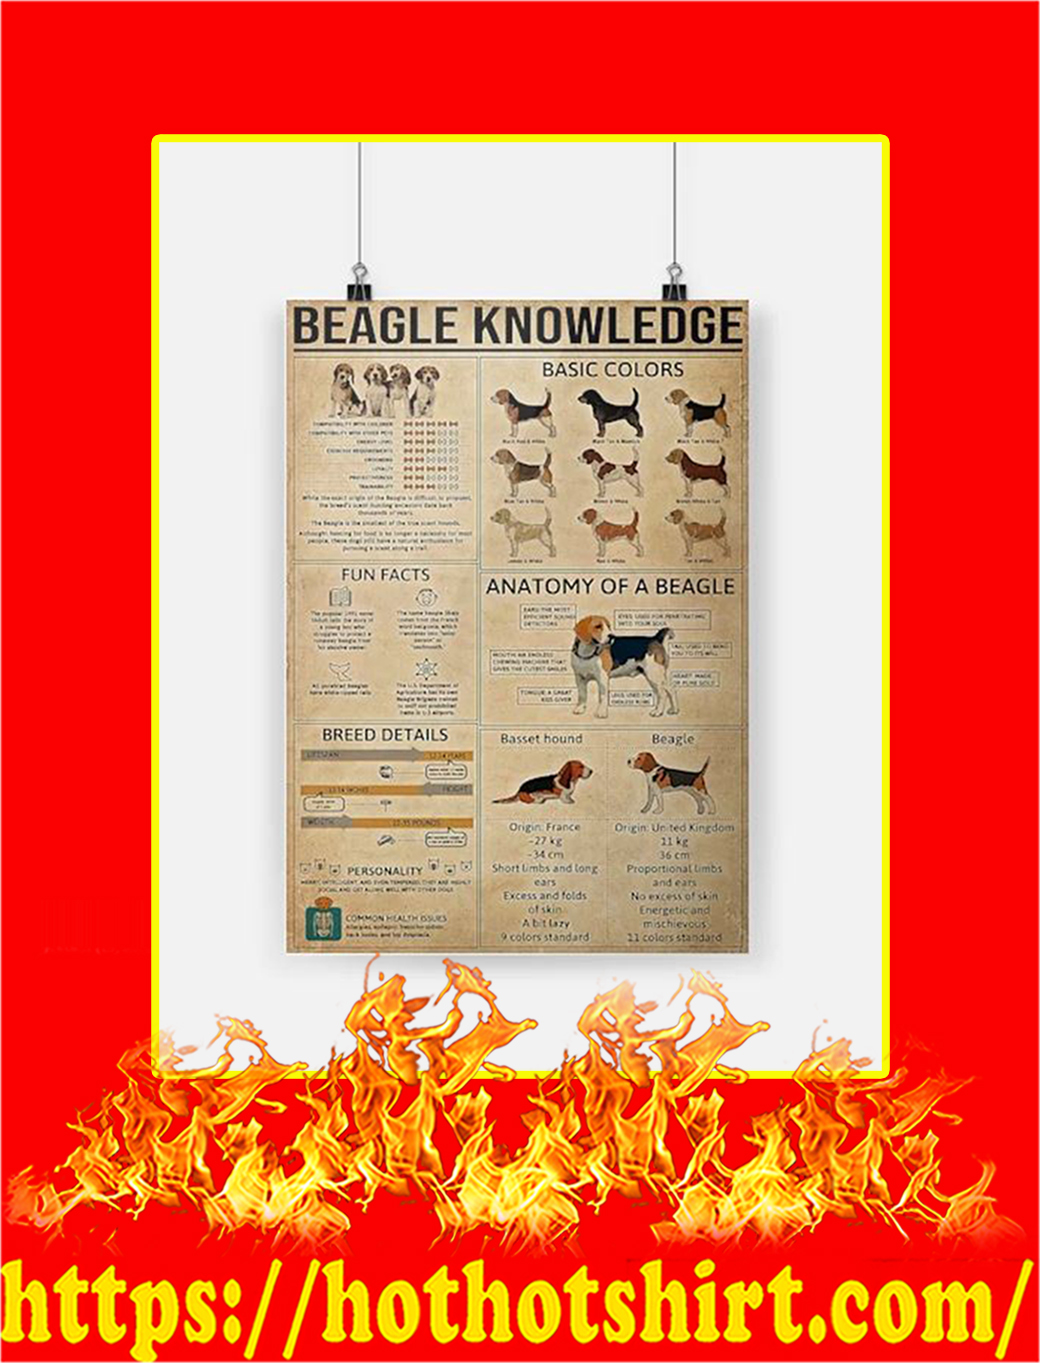 Beagle knowledge Poster - A2